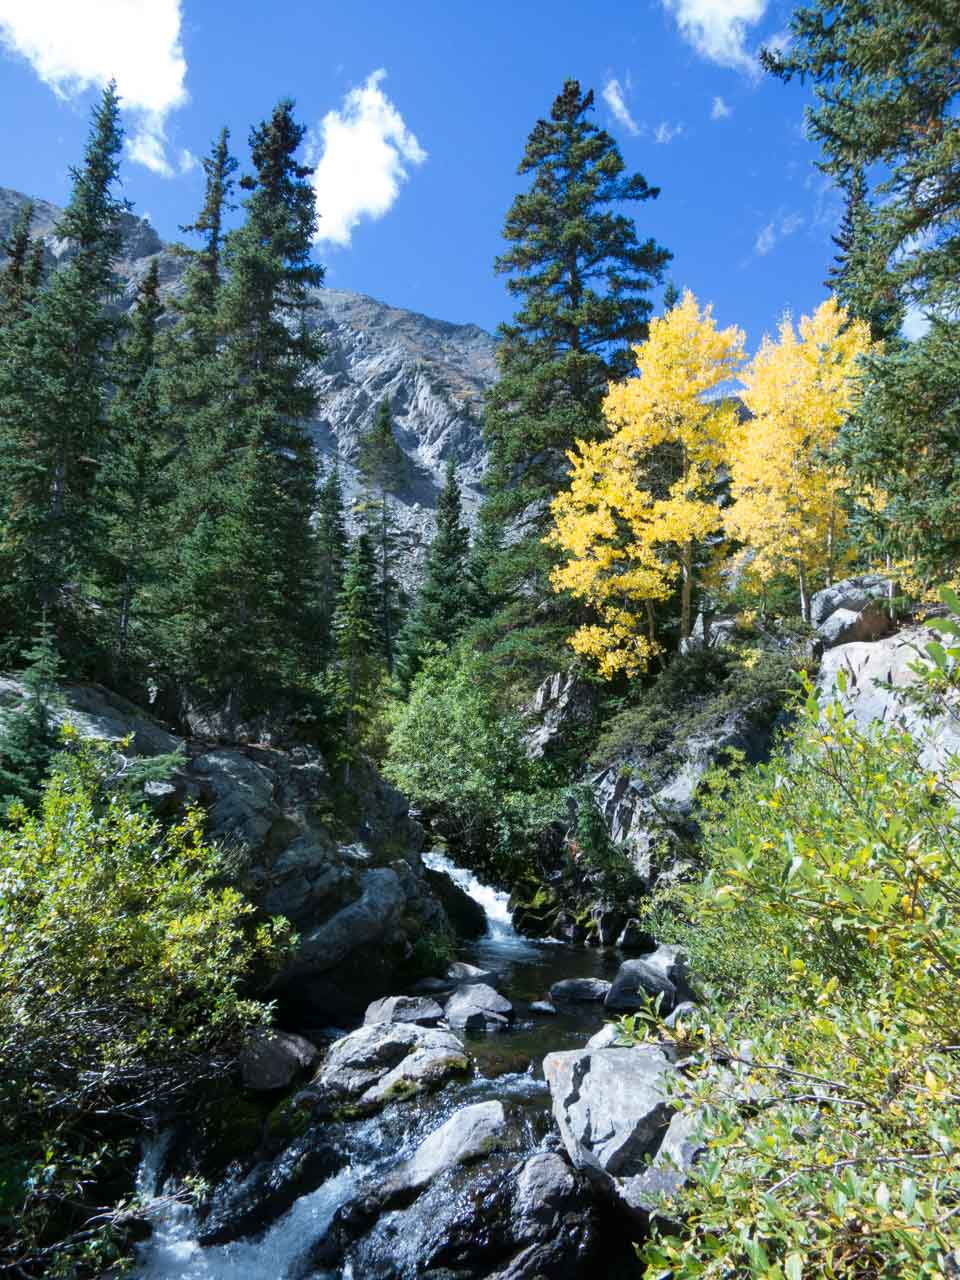 The trailhead begins at about 11,000 feet, just below the treeline with this picturesque assortment of pine and aspen.